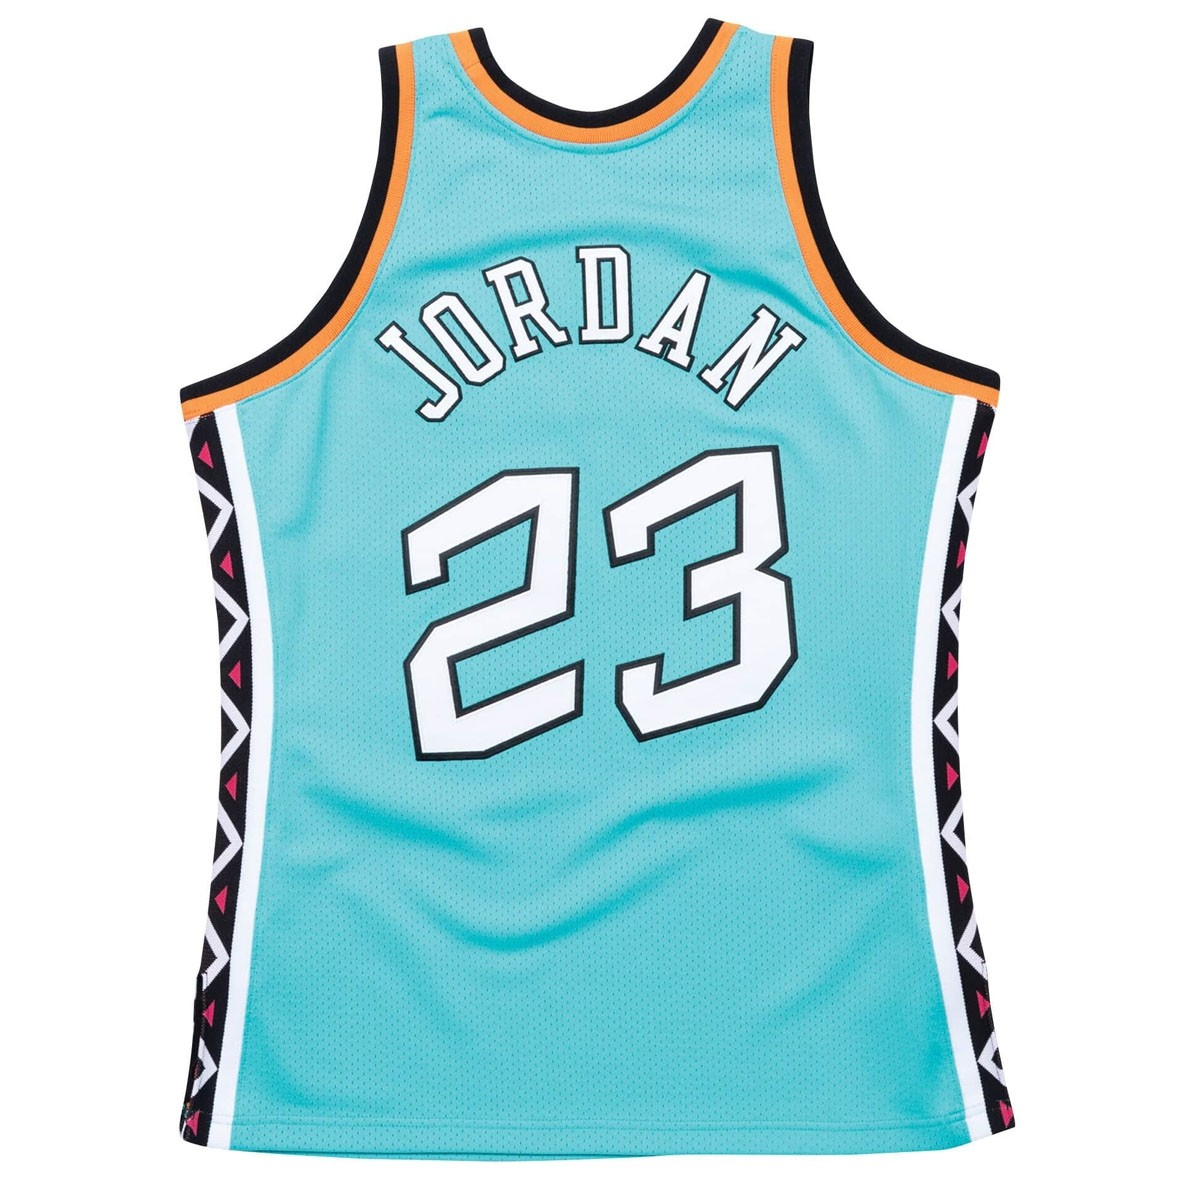 Mitchell & Ness Jordan Authentic Jersey 'All-Star 96' ASETEAL9-6MJO